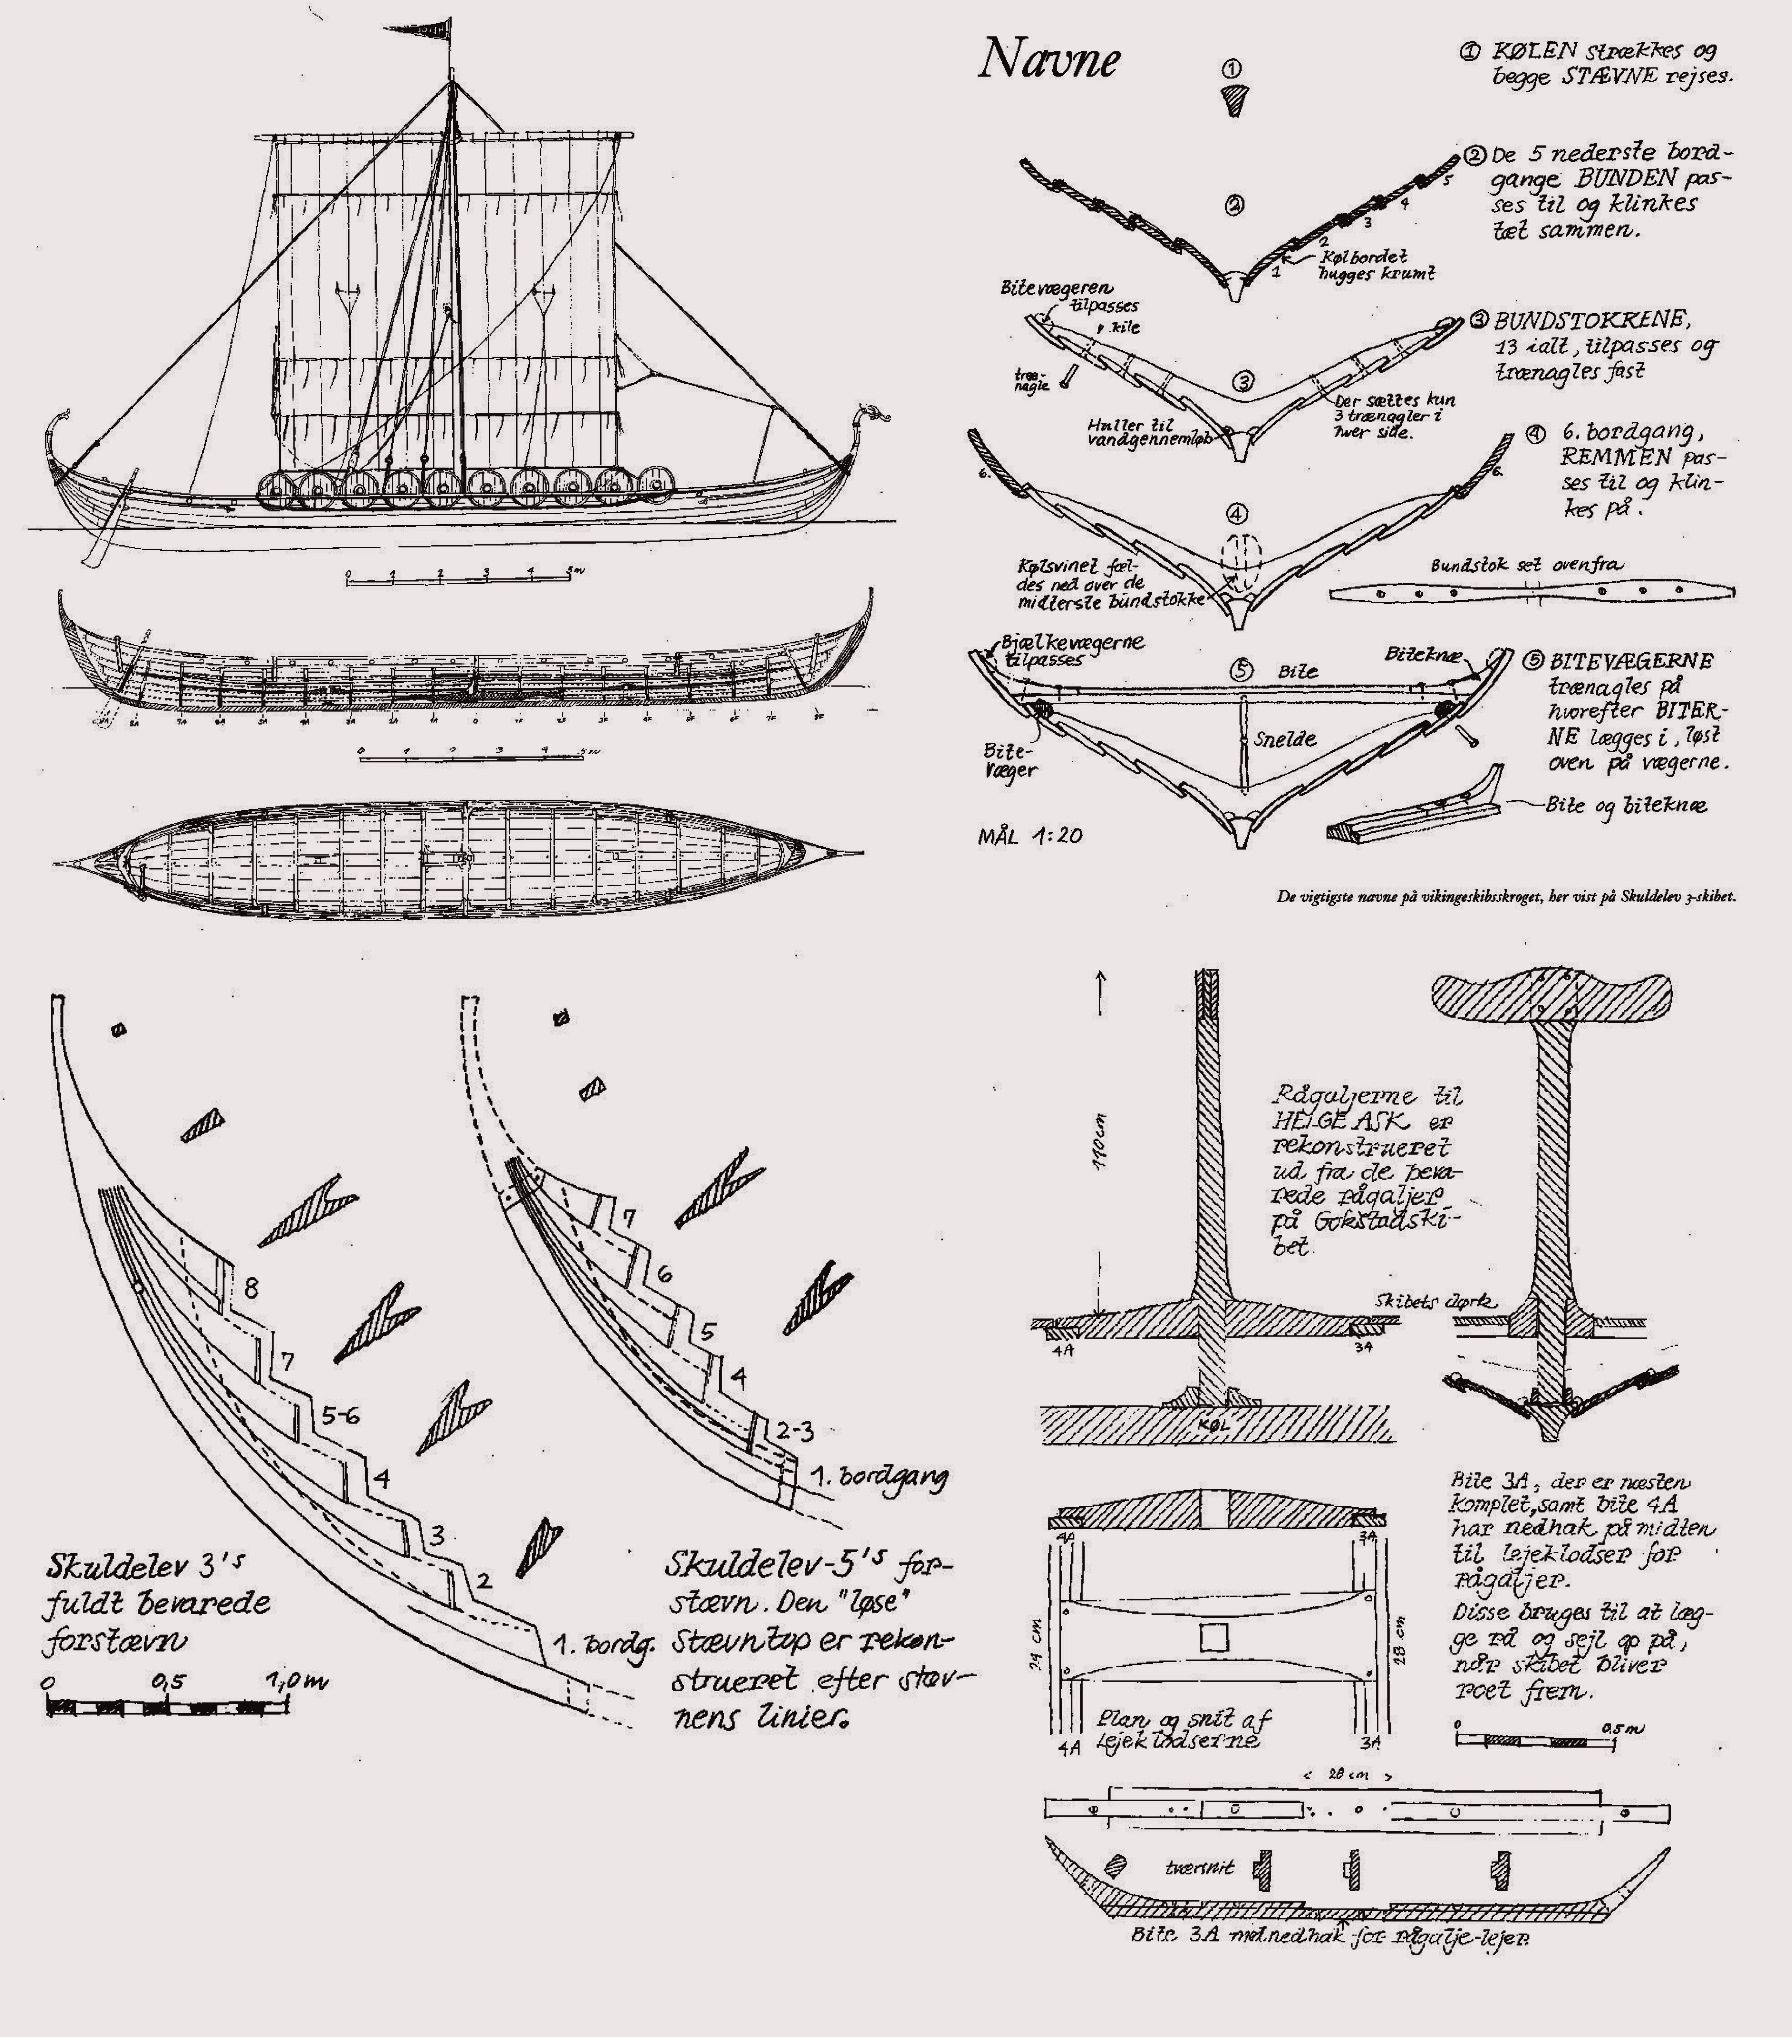 Viking Ship Plans Olander Viking Plans